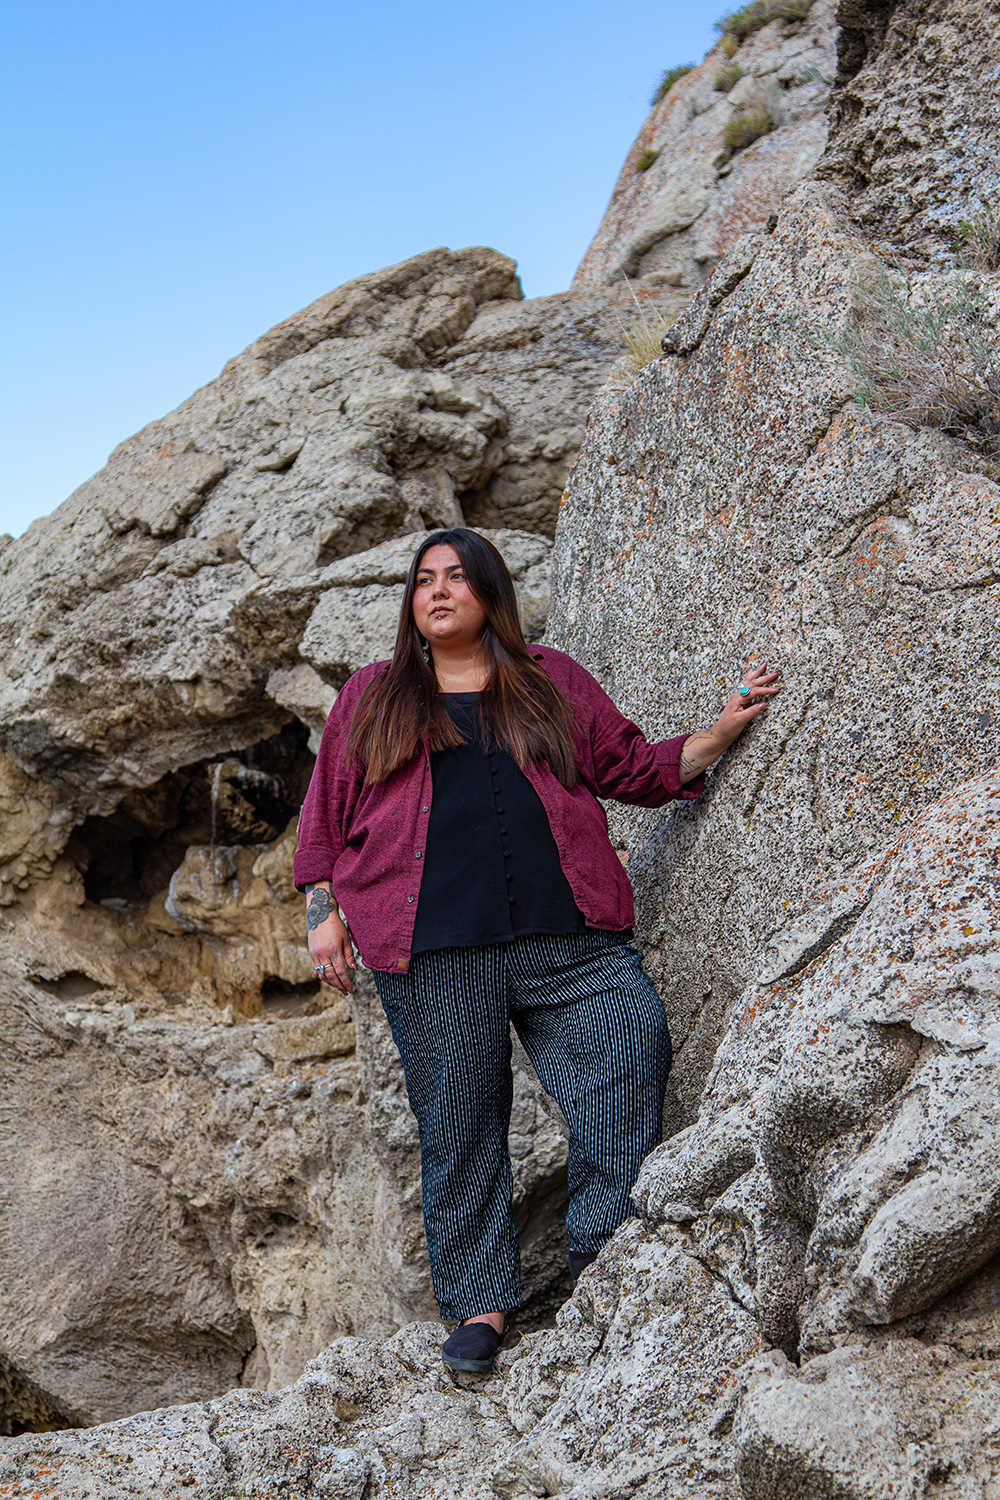 Jolie Varela, 34, is a citizen of the Tule River Yokut and Paiute Nations. She is a hiker, water protector, land defender, and change maker based out of PayahuunadŸ, the place of flowing water, also known as Owens Valley. (Photo by Jarrette Werk)